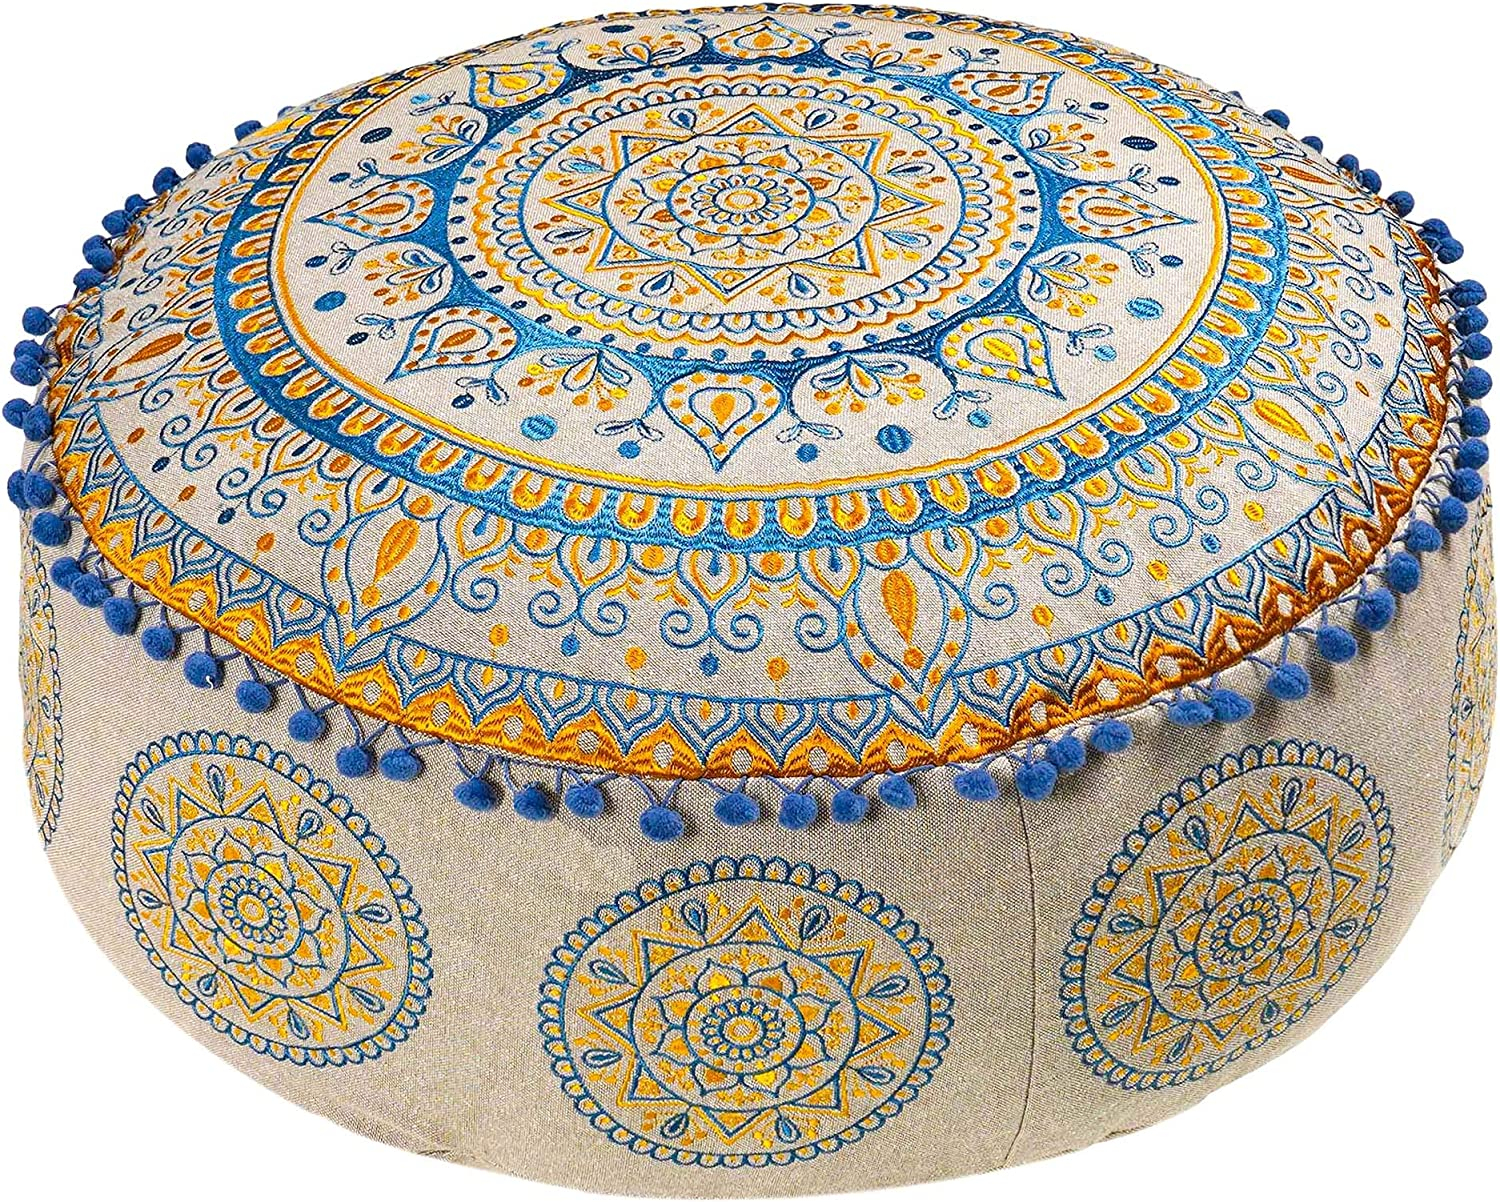 Mandala Life ART Bohemian Pouf Ottoman Cover -24x8 inchees - Luxury, Artisan Room Décor Pouffe for Meditation, Yoga, and Boho Chic Seating Area Stool Floor Pillow Case